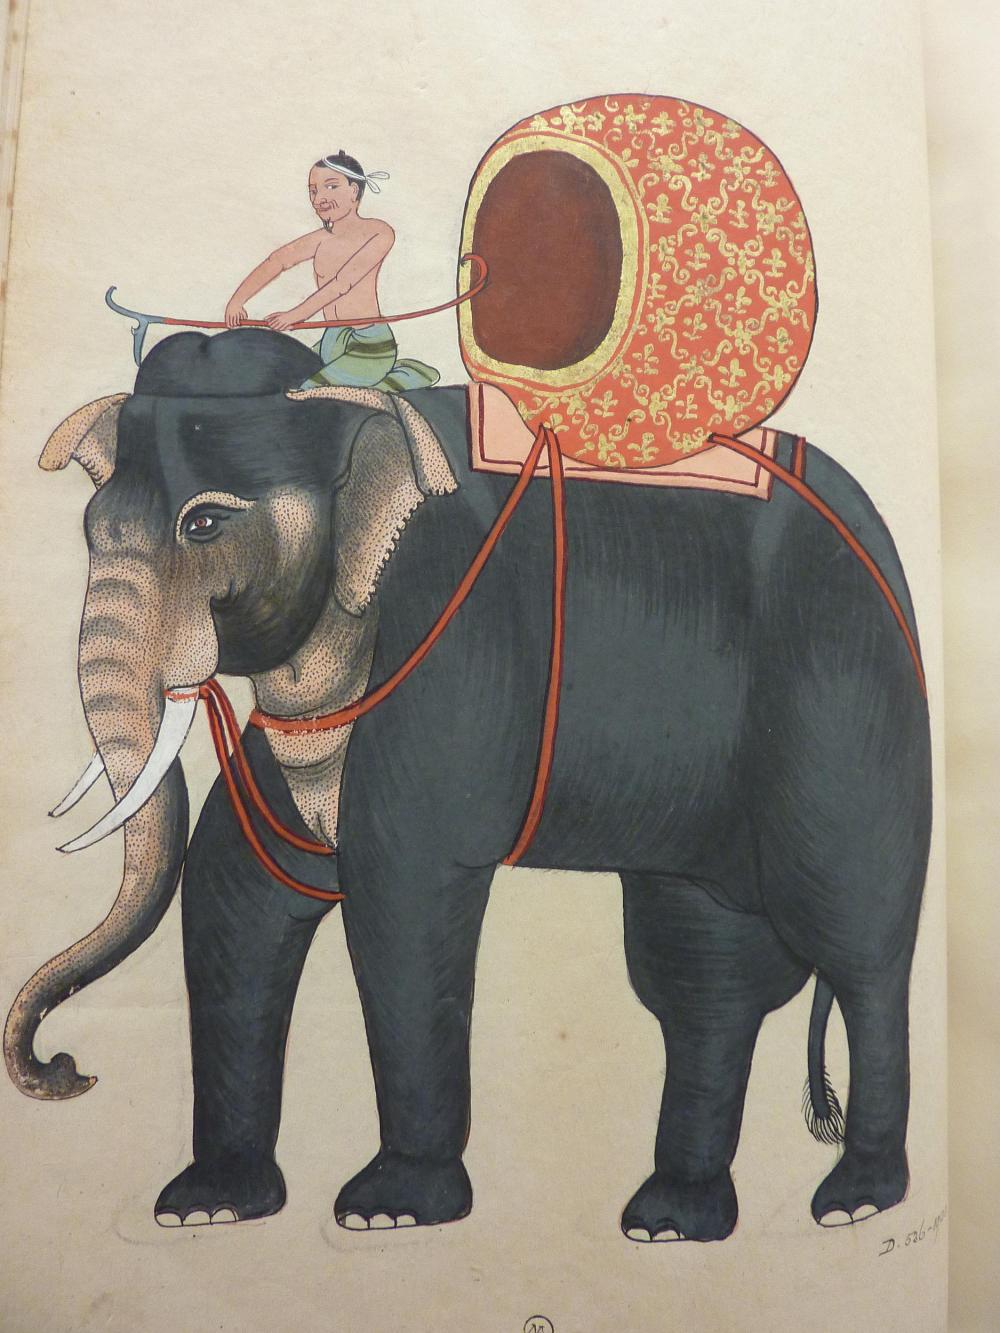 D.536-1901 The King's Elephant - His Majesty's favourite